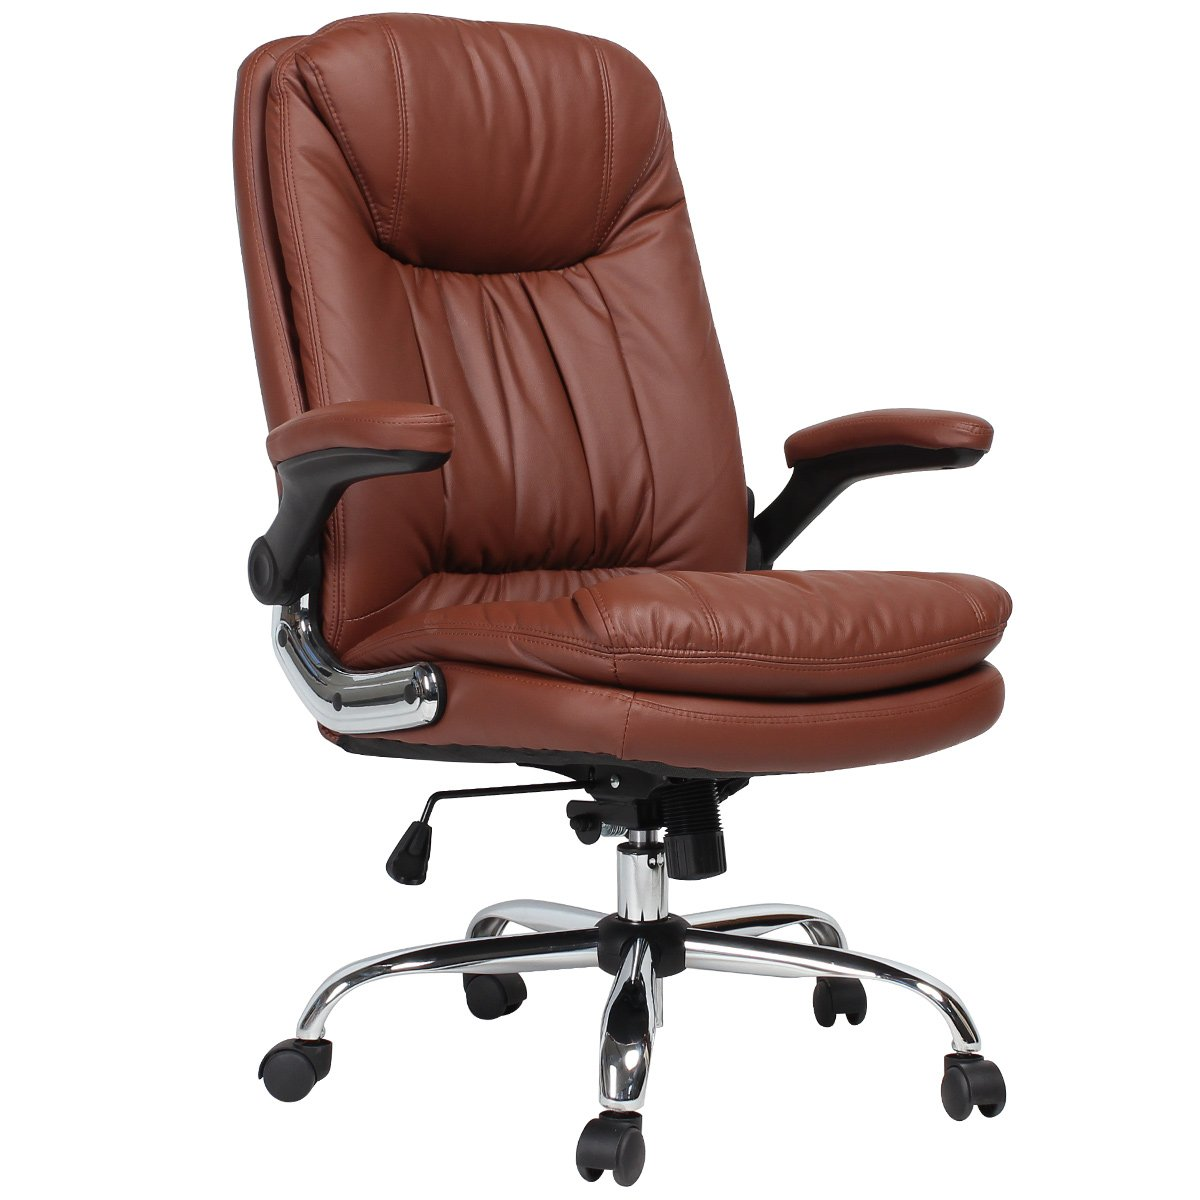 YAMASORO Ergonomic High Back Executive Office Chair, PU Leather Computer Gaming Desk Chair Brown with Flip-Up Arms, Swivel, Big for Man and Women Brown